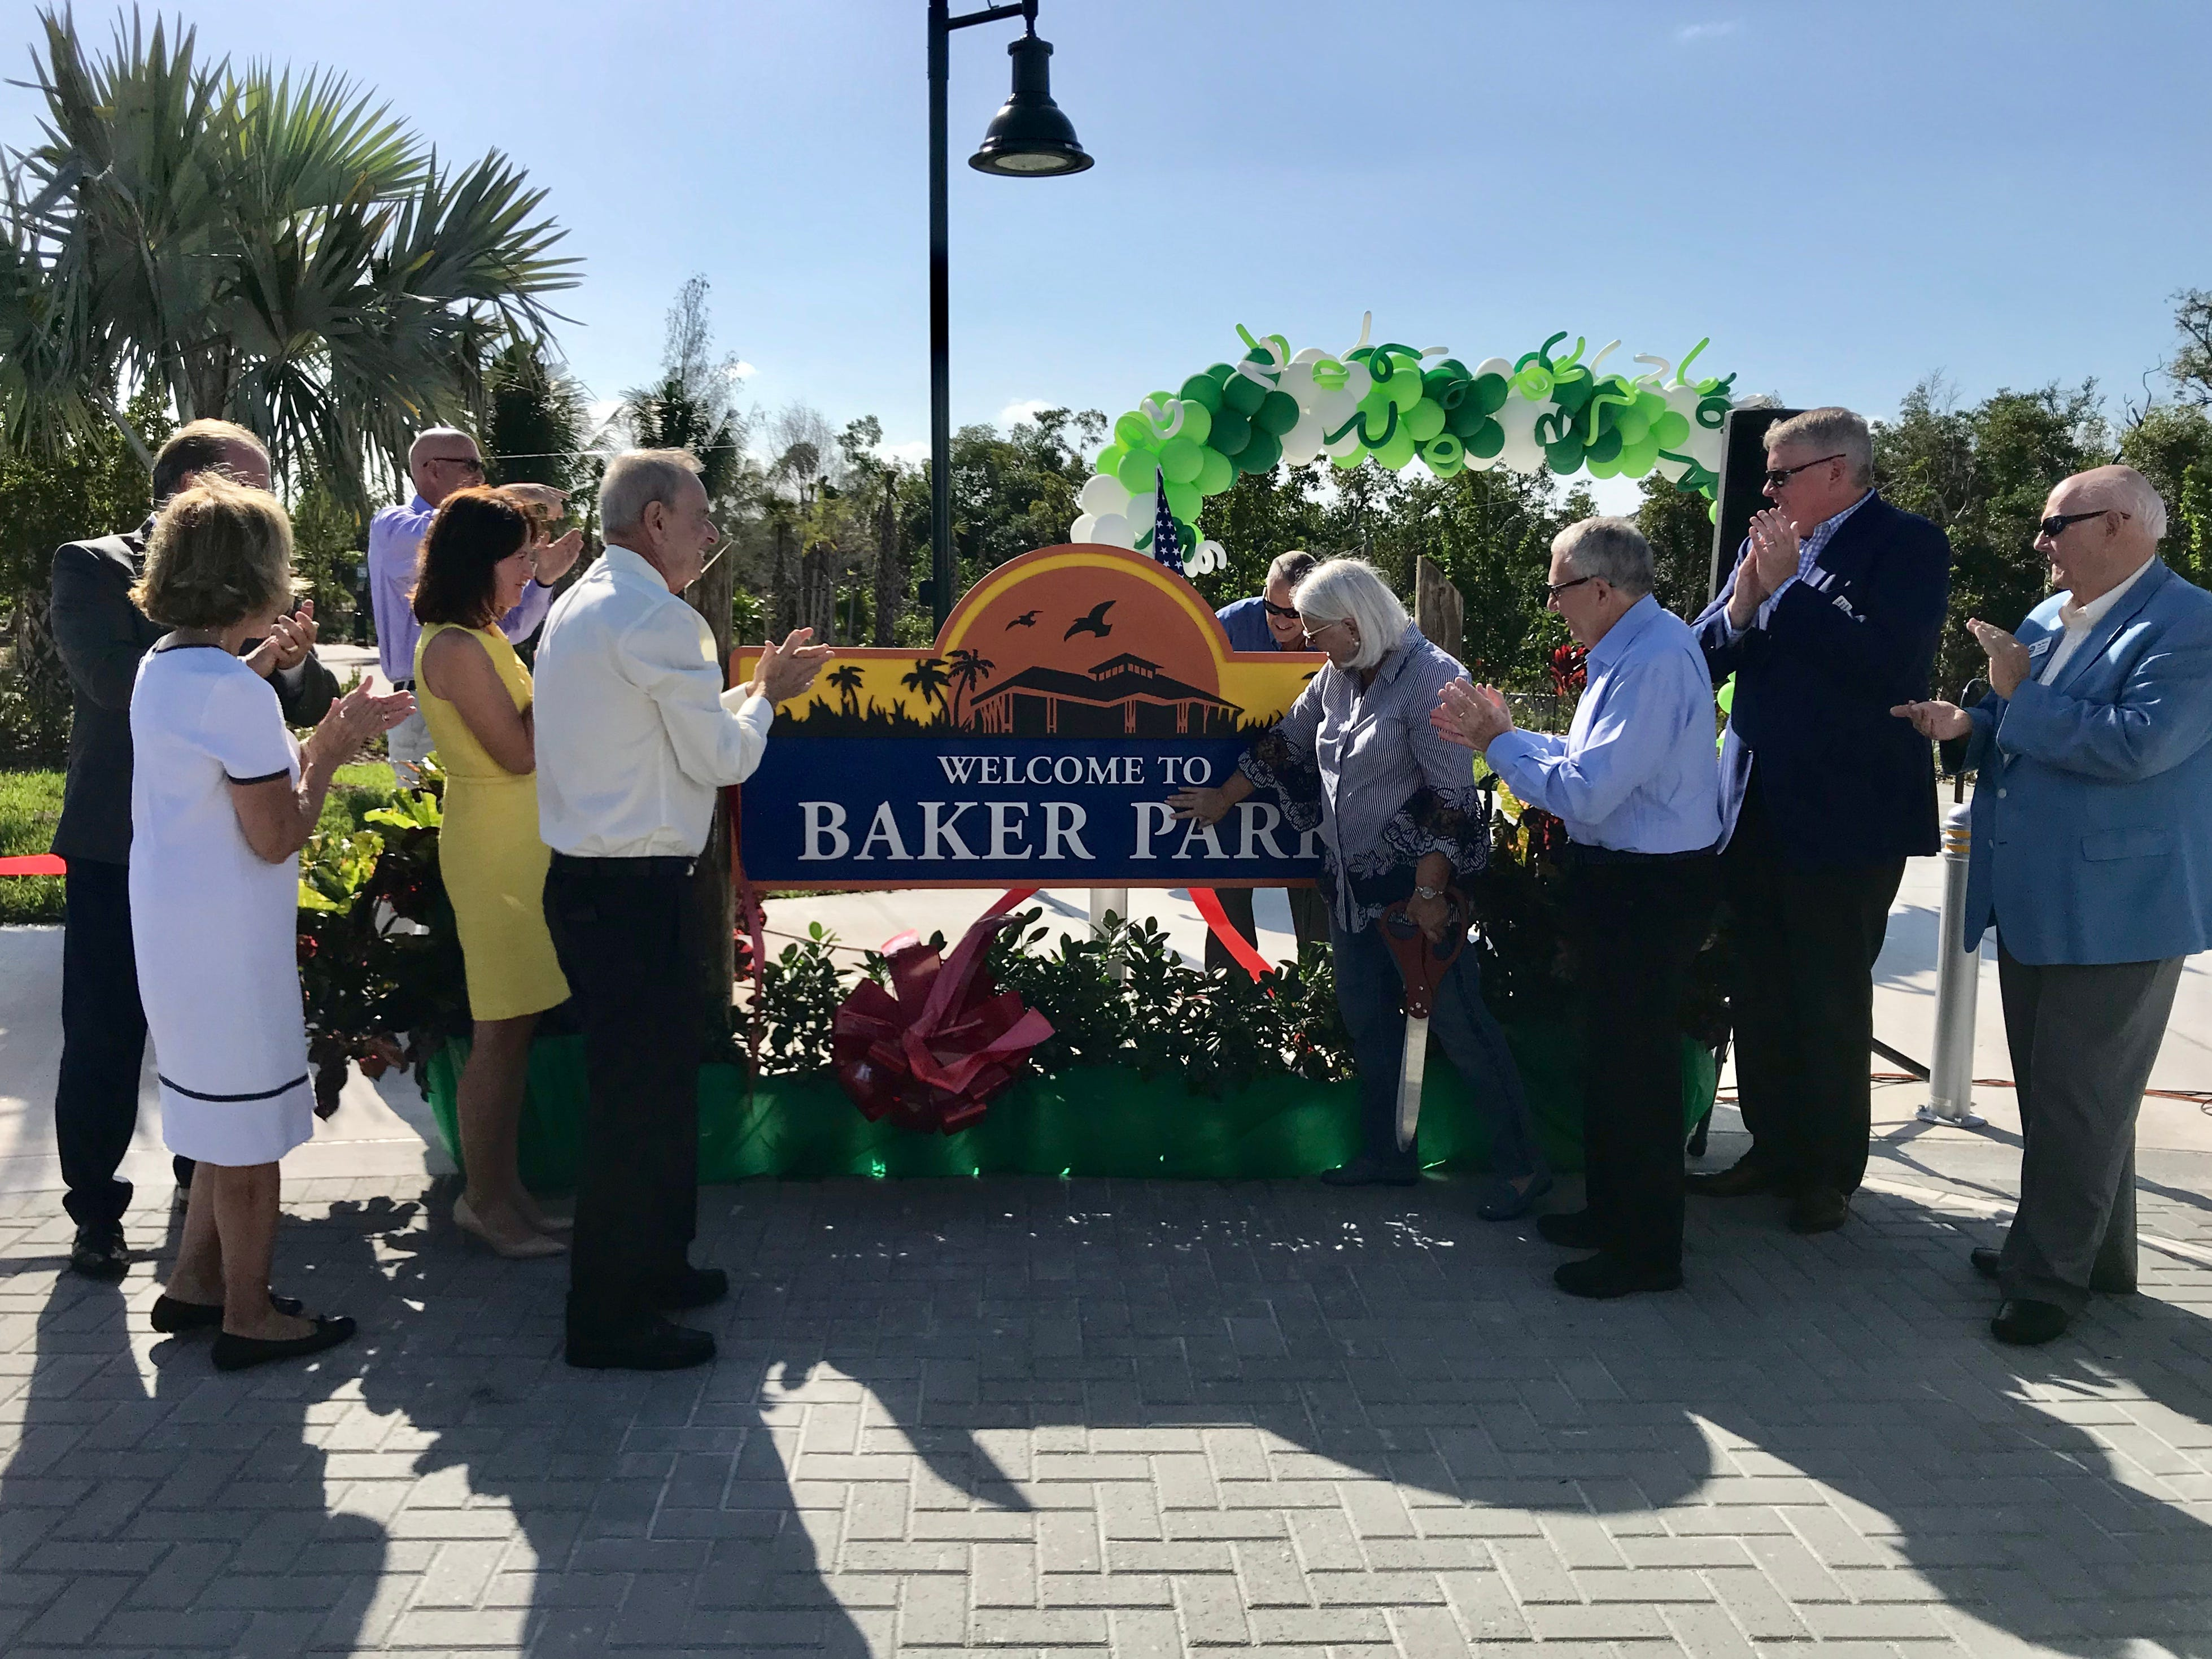 Patty Baker, right, touches the Baker Park sign during the dedication ceremony on March 14, 2019. The first portion of Baker Park opened on March 14. The rest of the park is set to open in October.